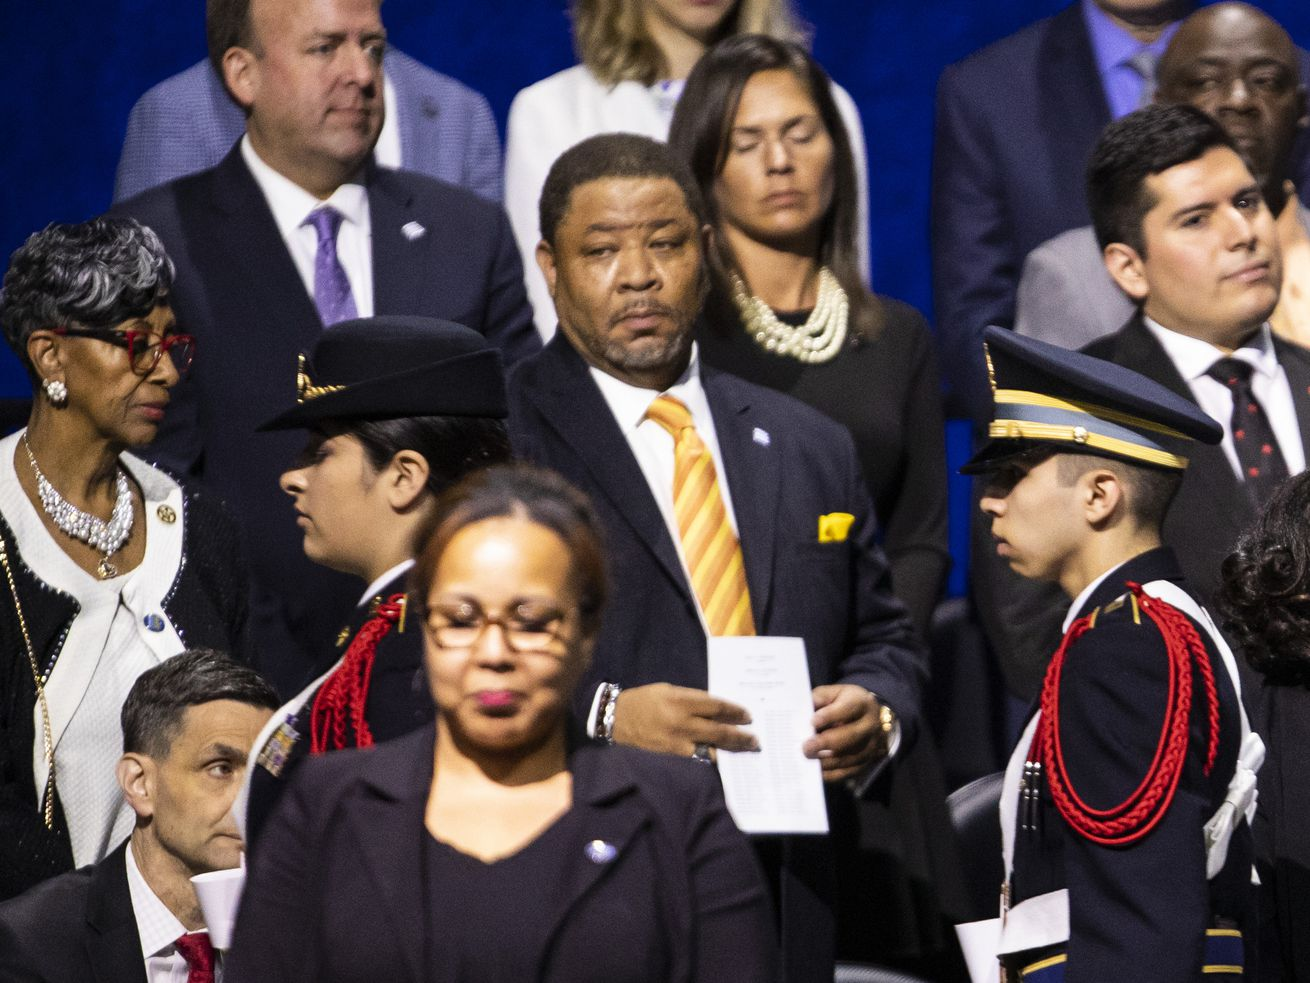 An outside audit was ordered of the Cook County Land Bank Authority as the result of an insider deal involving Chester Wilson (center, yellow tie), chief of staff to Ald. Carrie Austin (center, front).